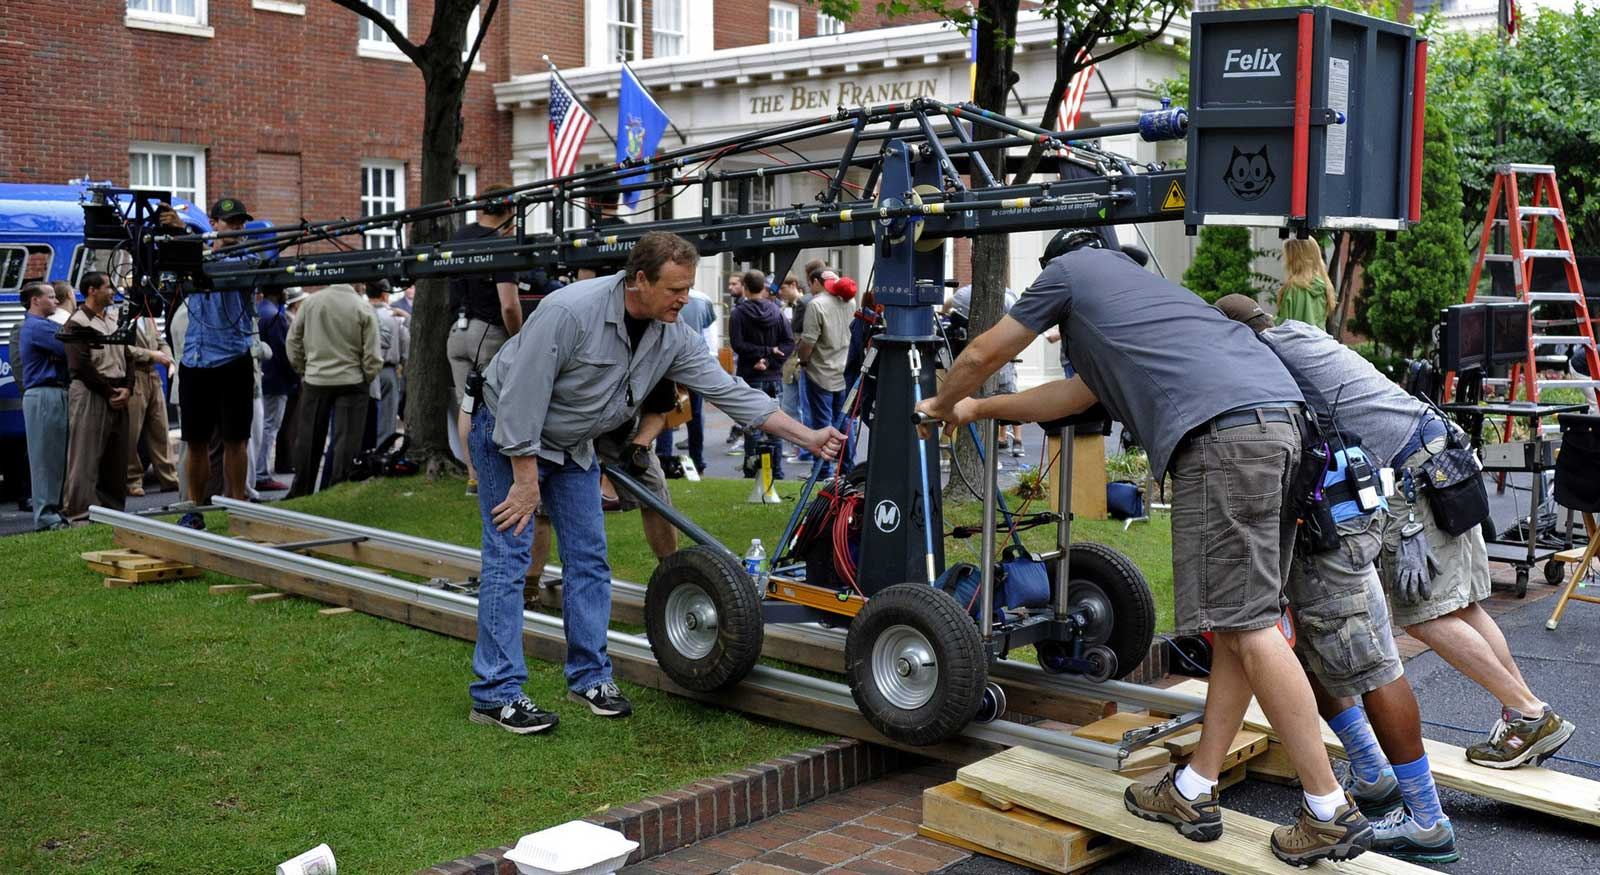 Shooting Schedule Pro Tips for a 10-Page Shoot Day - 2. Enlist film crew setup scene